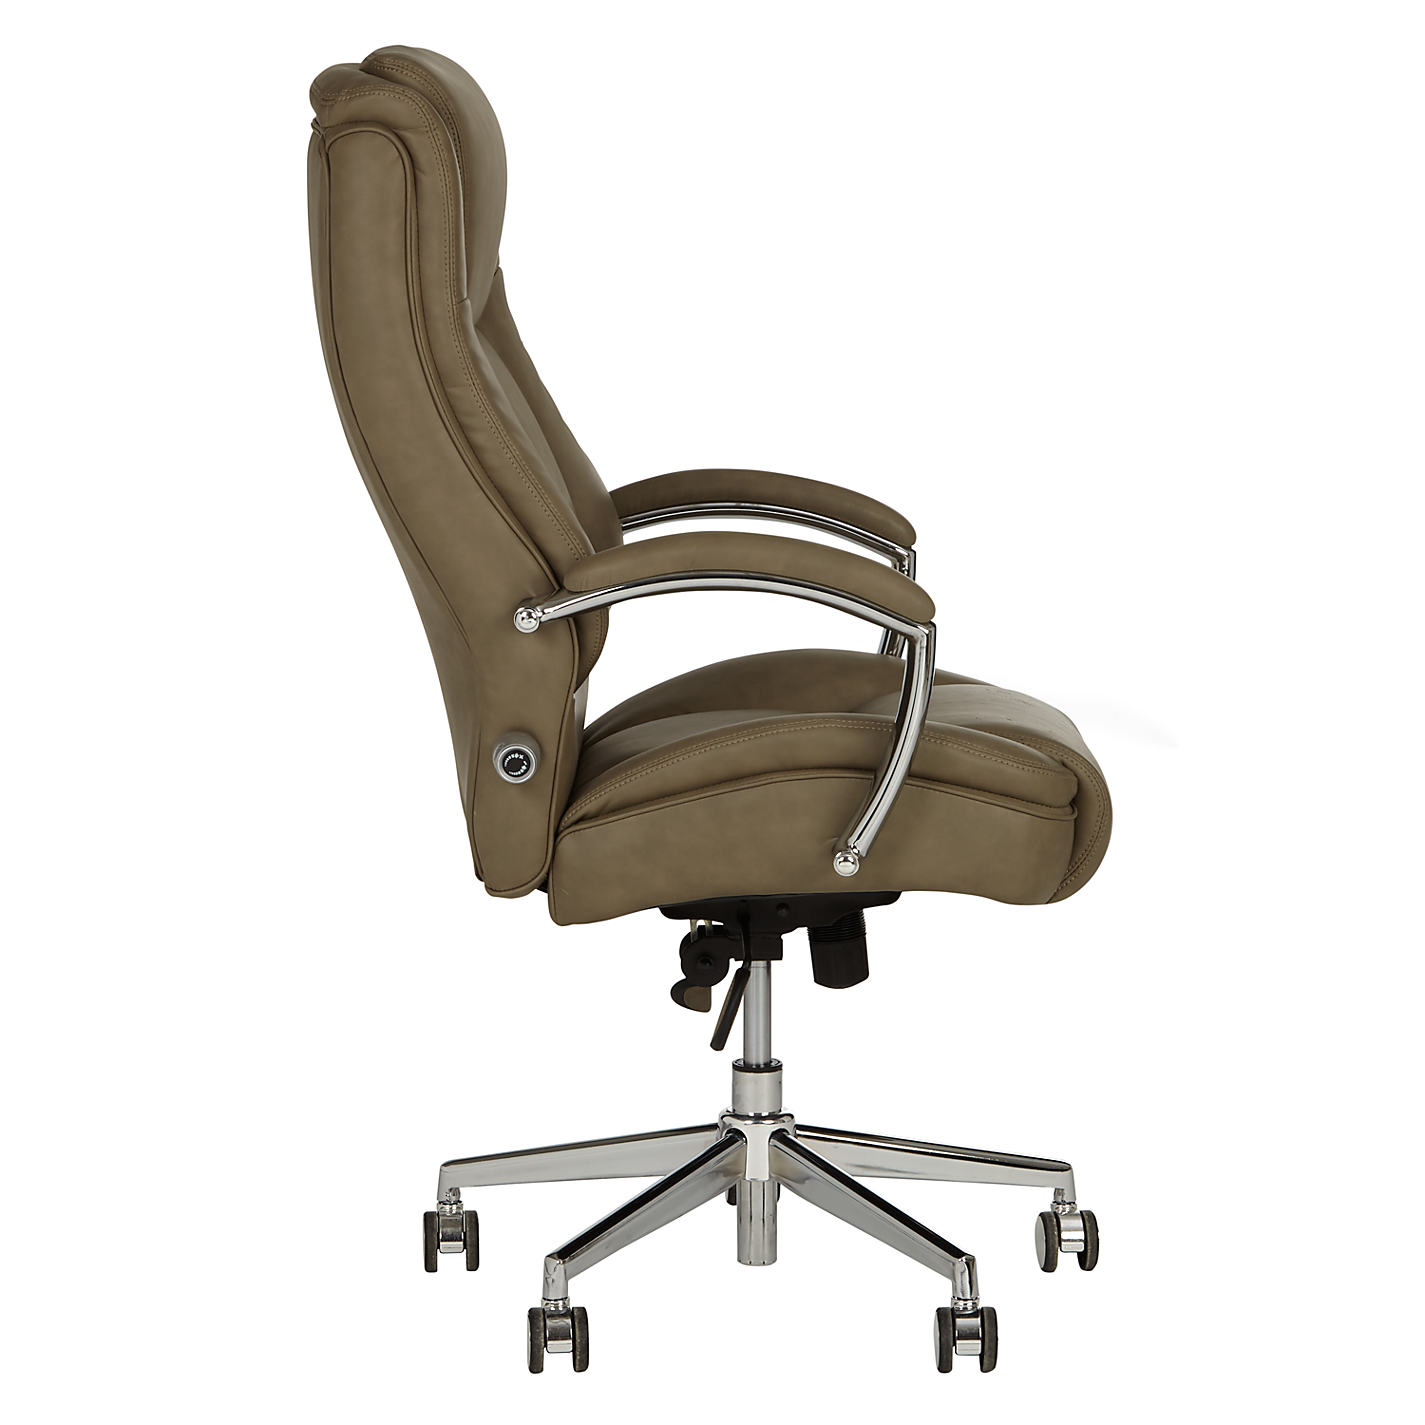 office chairs john lewis. buy john lewis jefferson office chair online at johnlewiscom chairs r